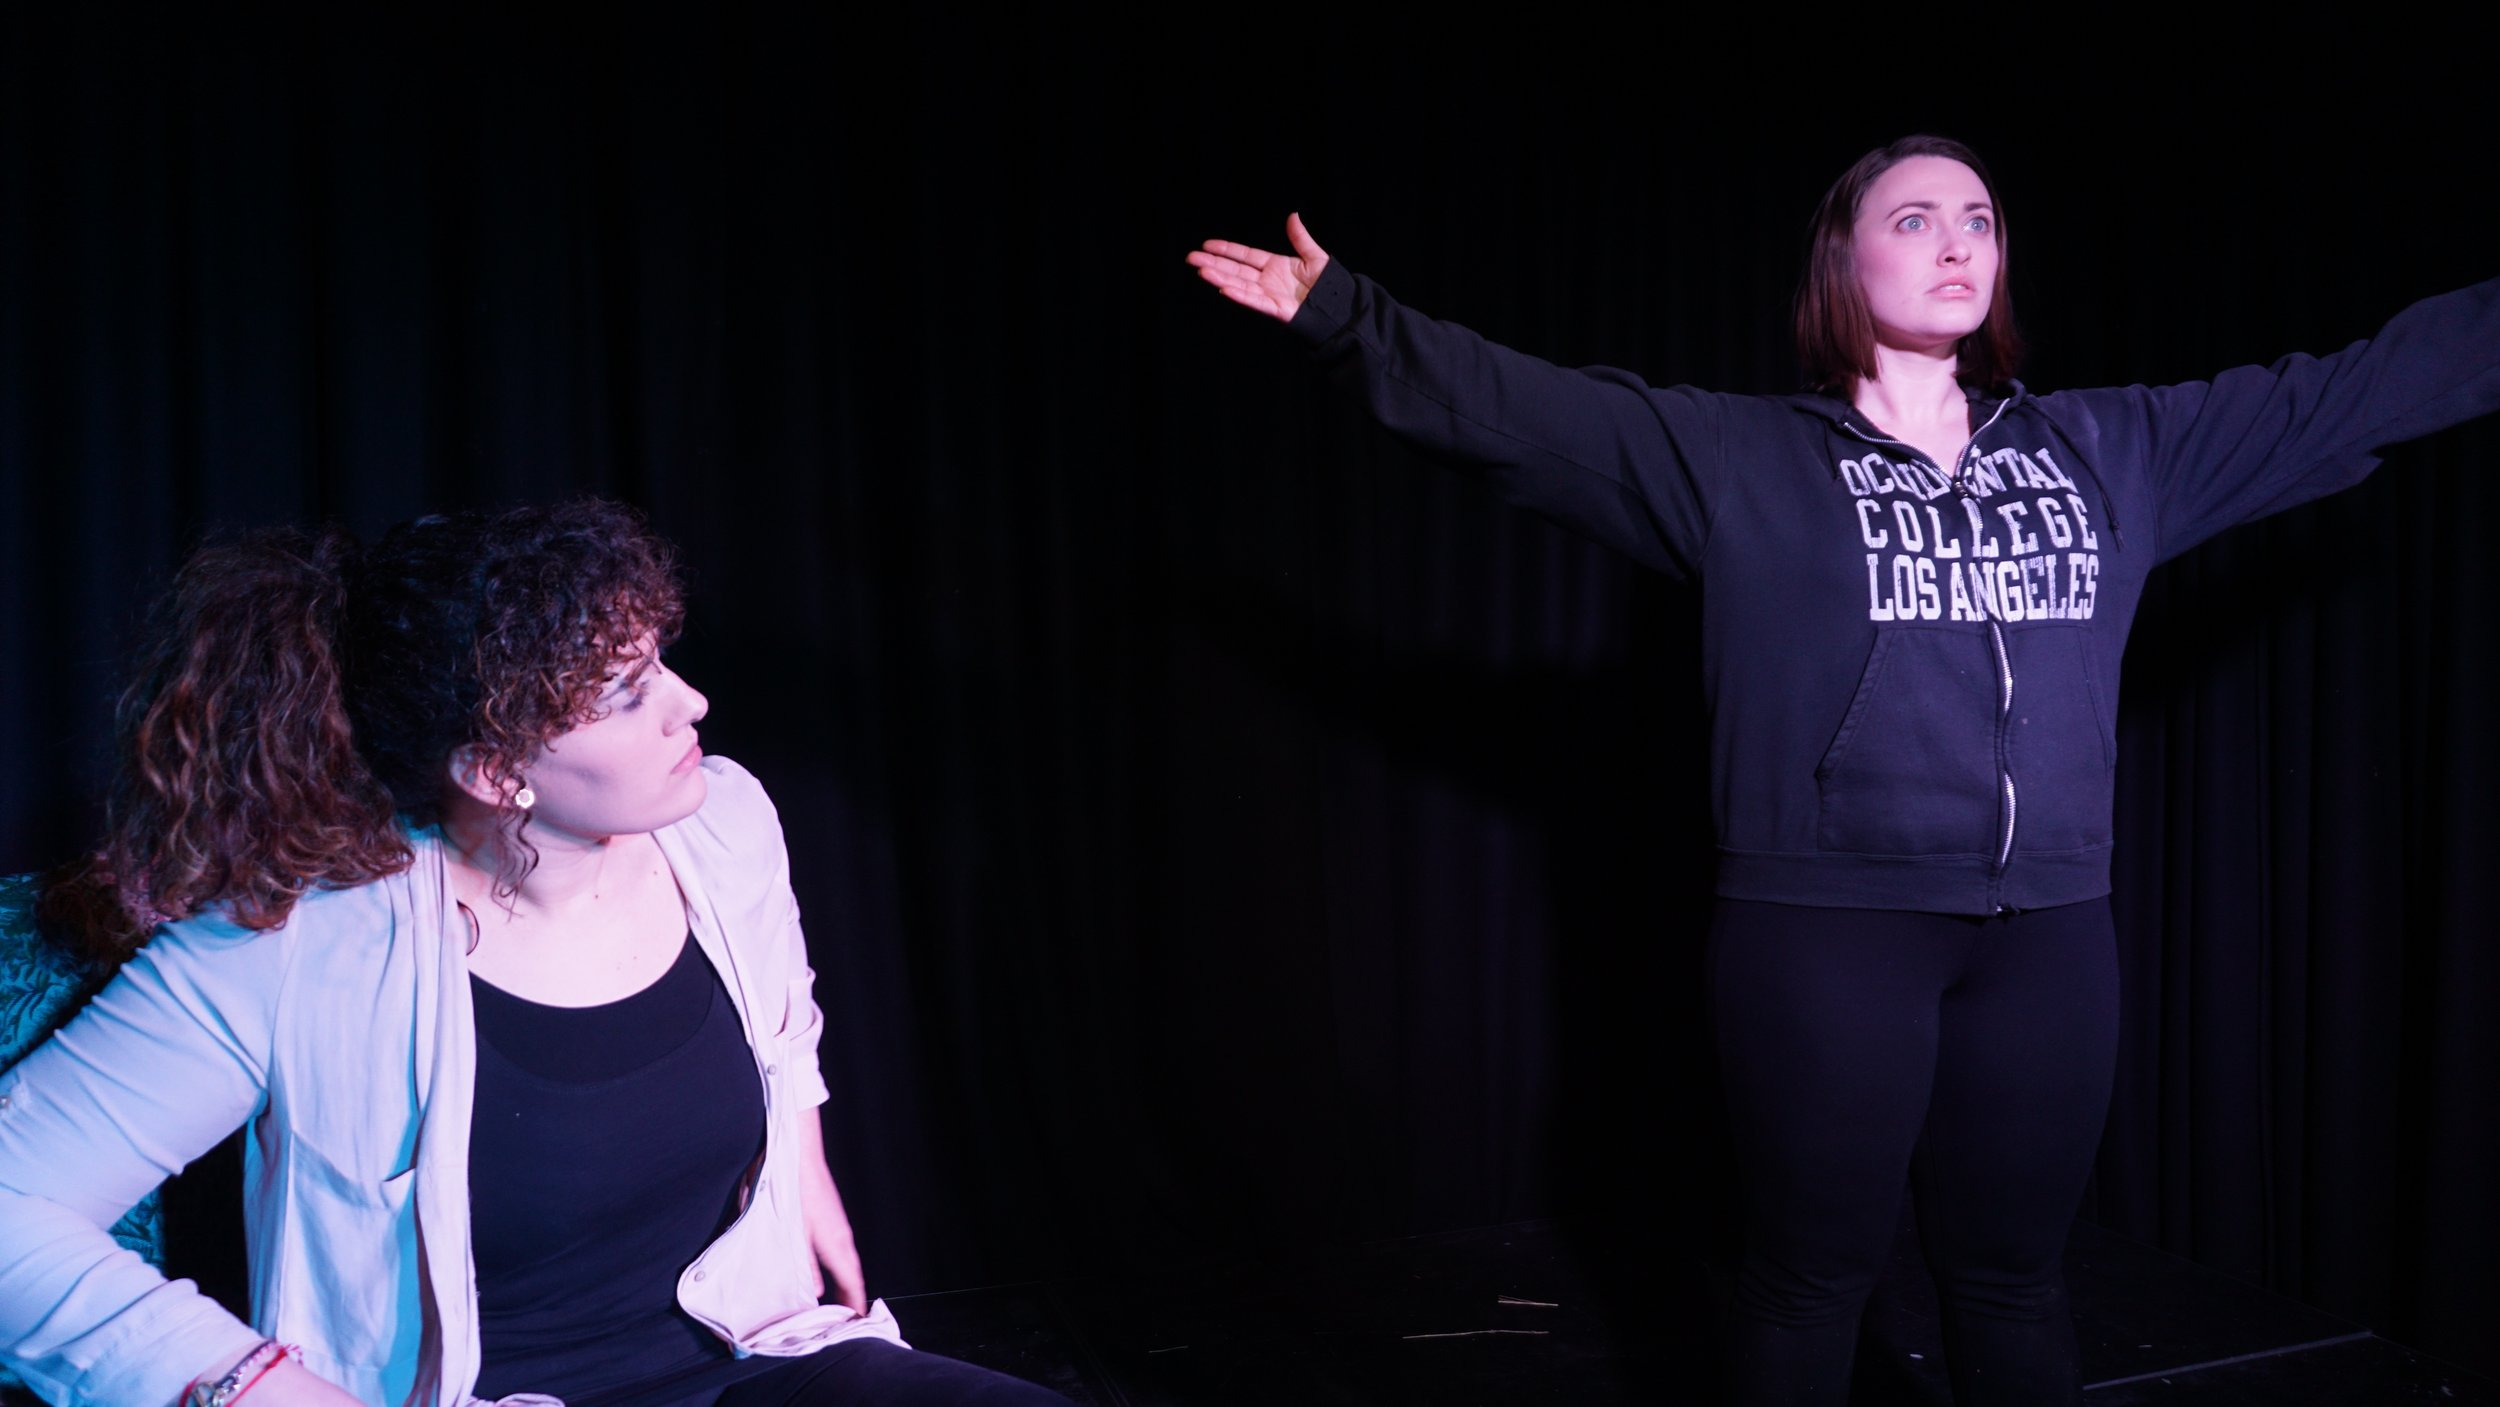 Evi Polyviou (left) and Bee Scott (right) in LAST TRAGEDY